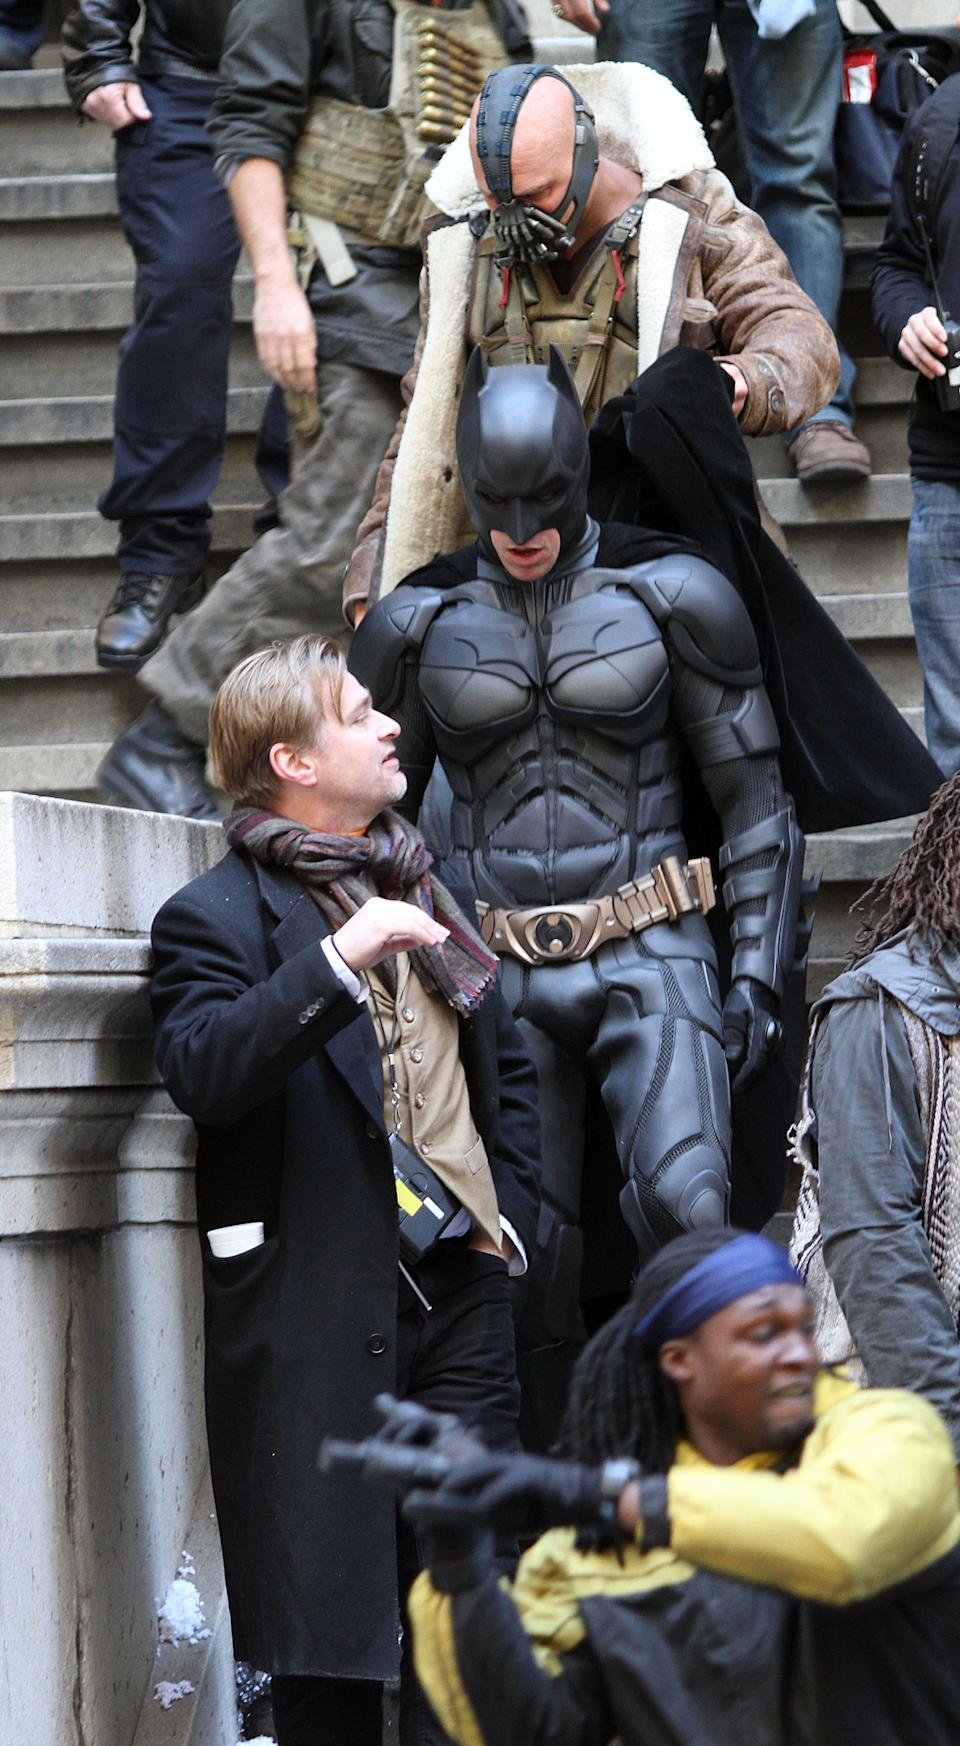 """NEW YORK, NY - NOVEMBER 05:  Actors Christian Bale in costume as Batman, Tom Hardy as Bane  and director Christopher Nolan are seen on the set of """"The Dark Knight Rises"""" on location on Wall Street on November 5, 2011 in New York City.  (Photo by Marcel Thomas/FilmMagic)"""